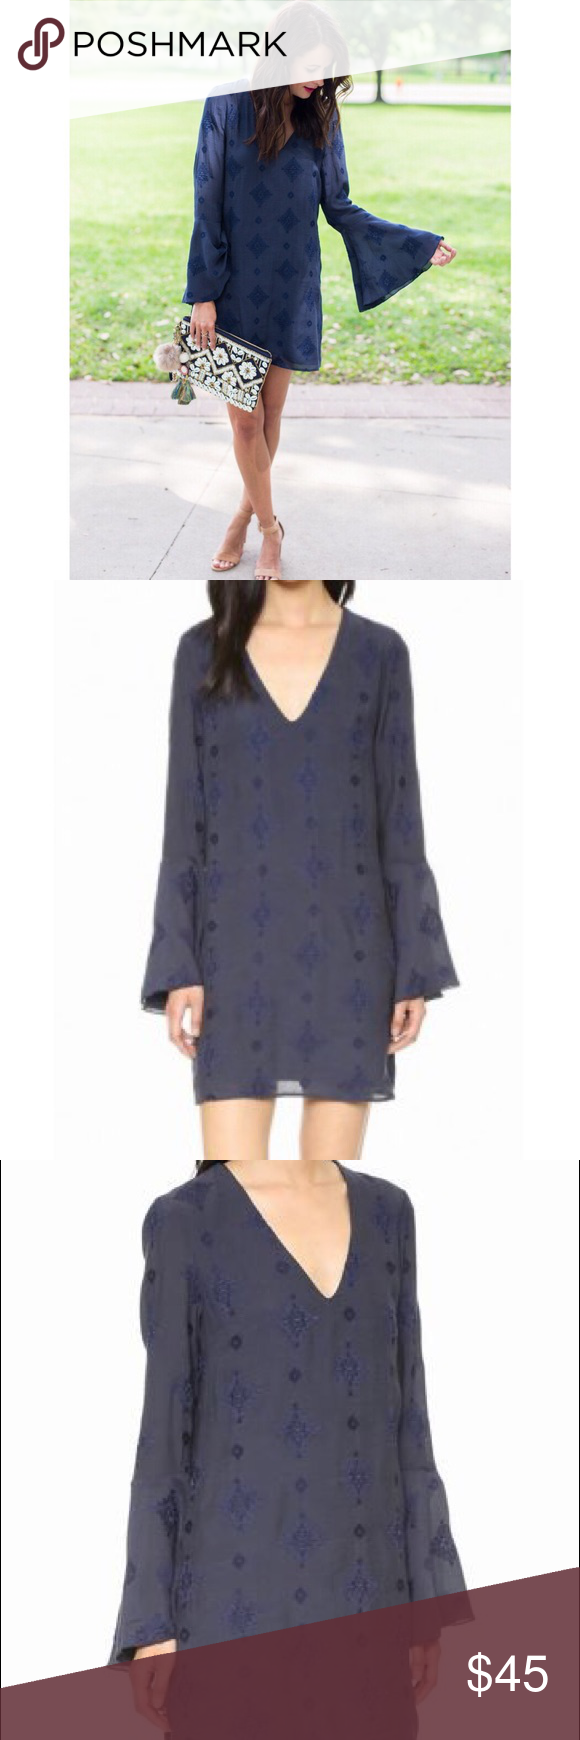 Embroidered bell sleeve dress sleeved dress navy and customer support